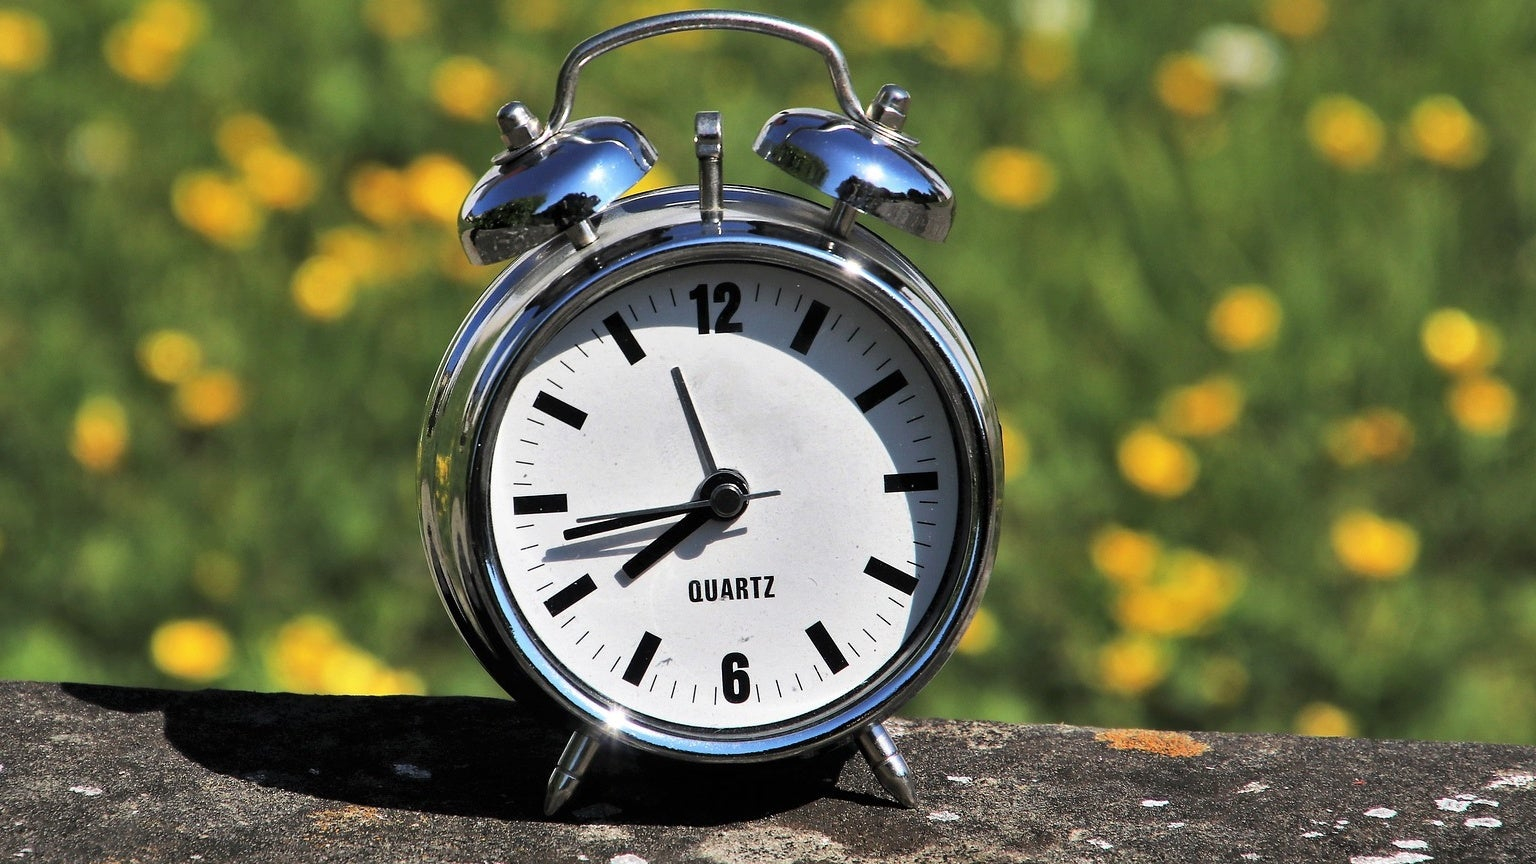 How long until the clocks go forward?